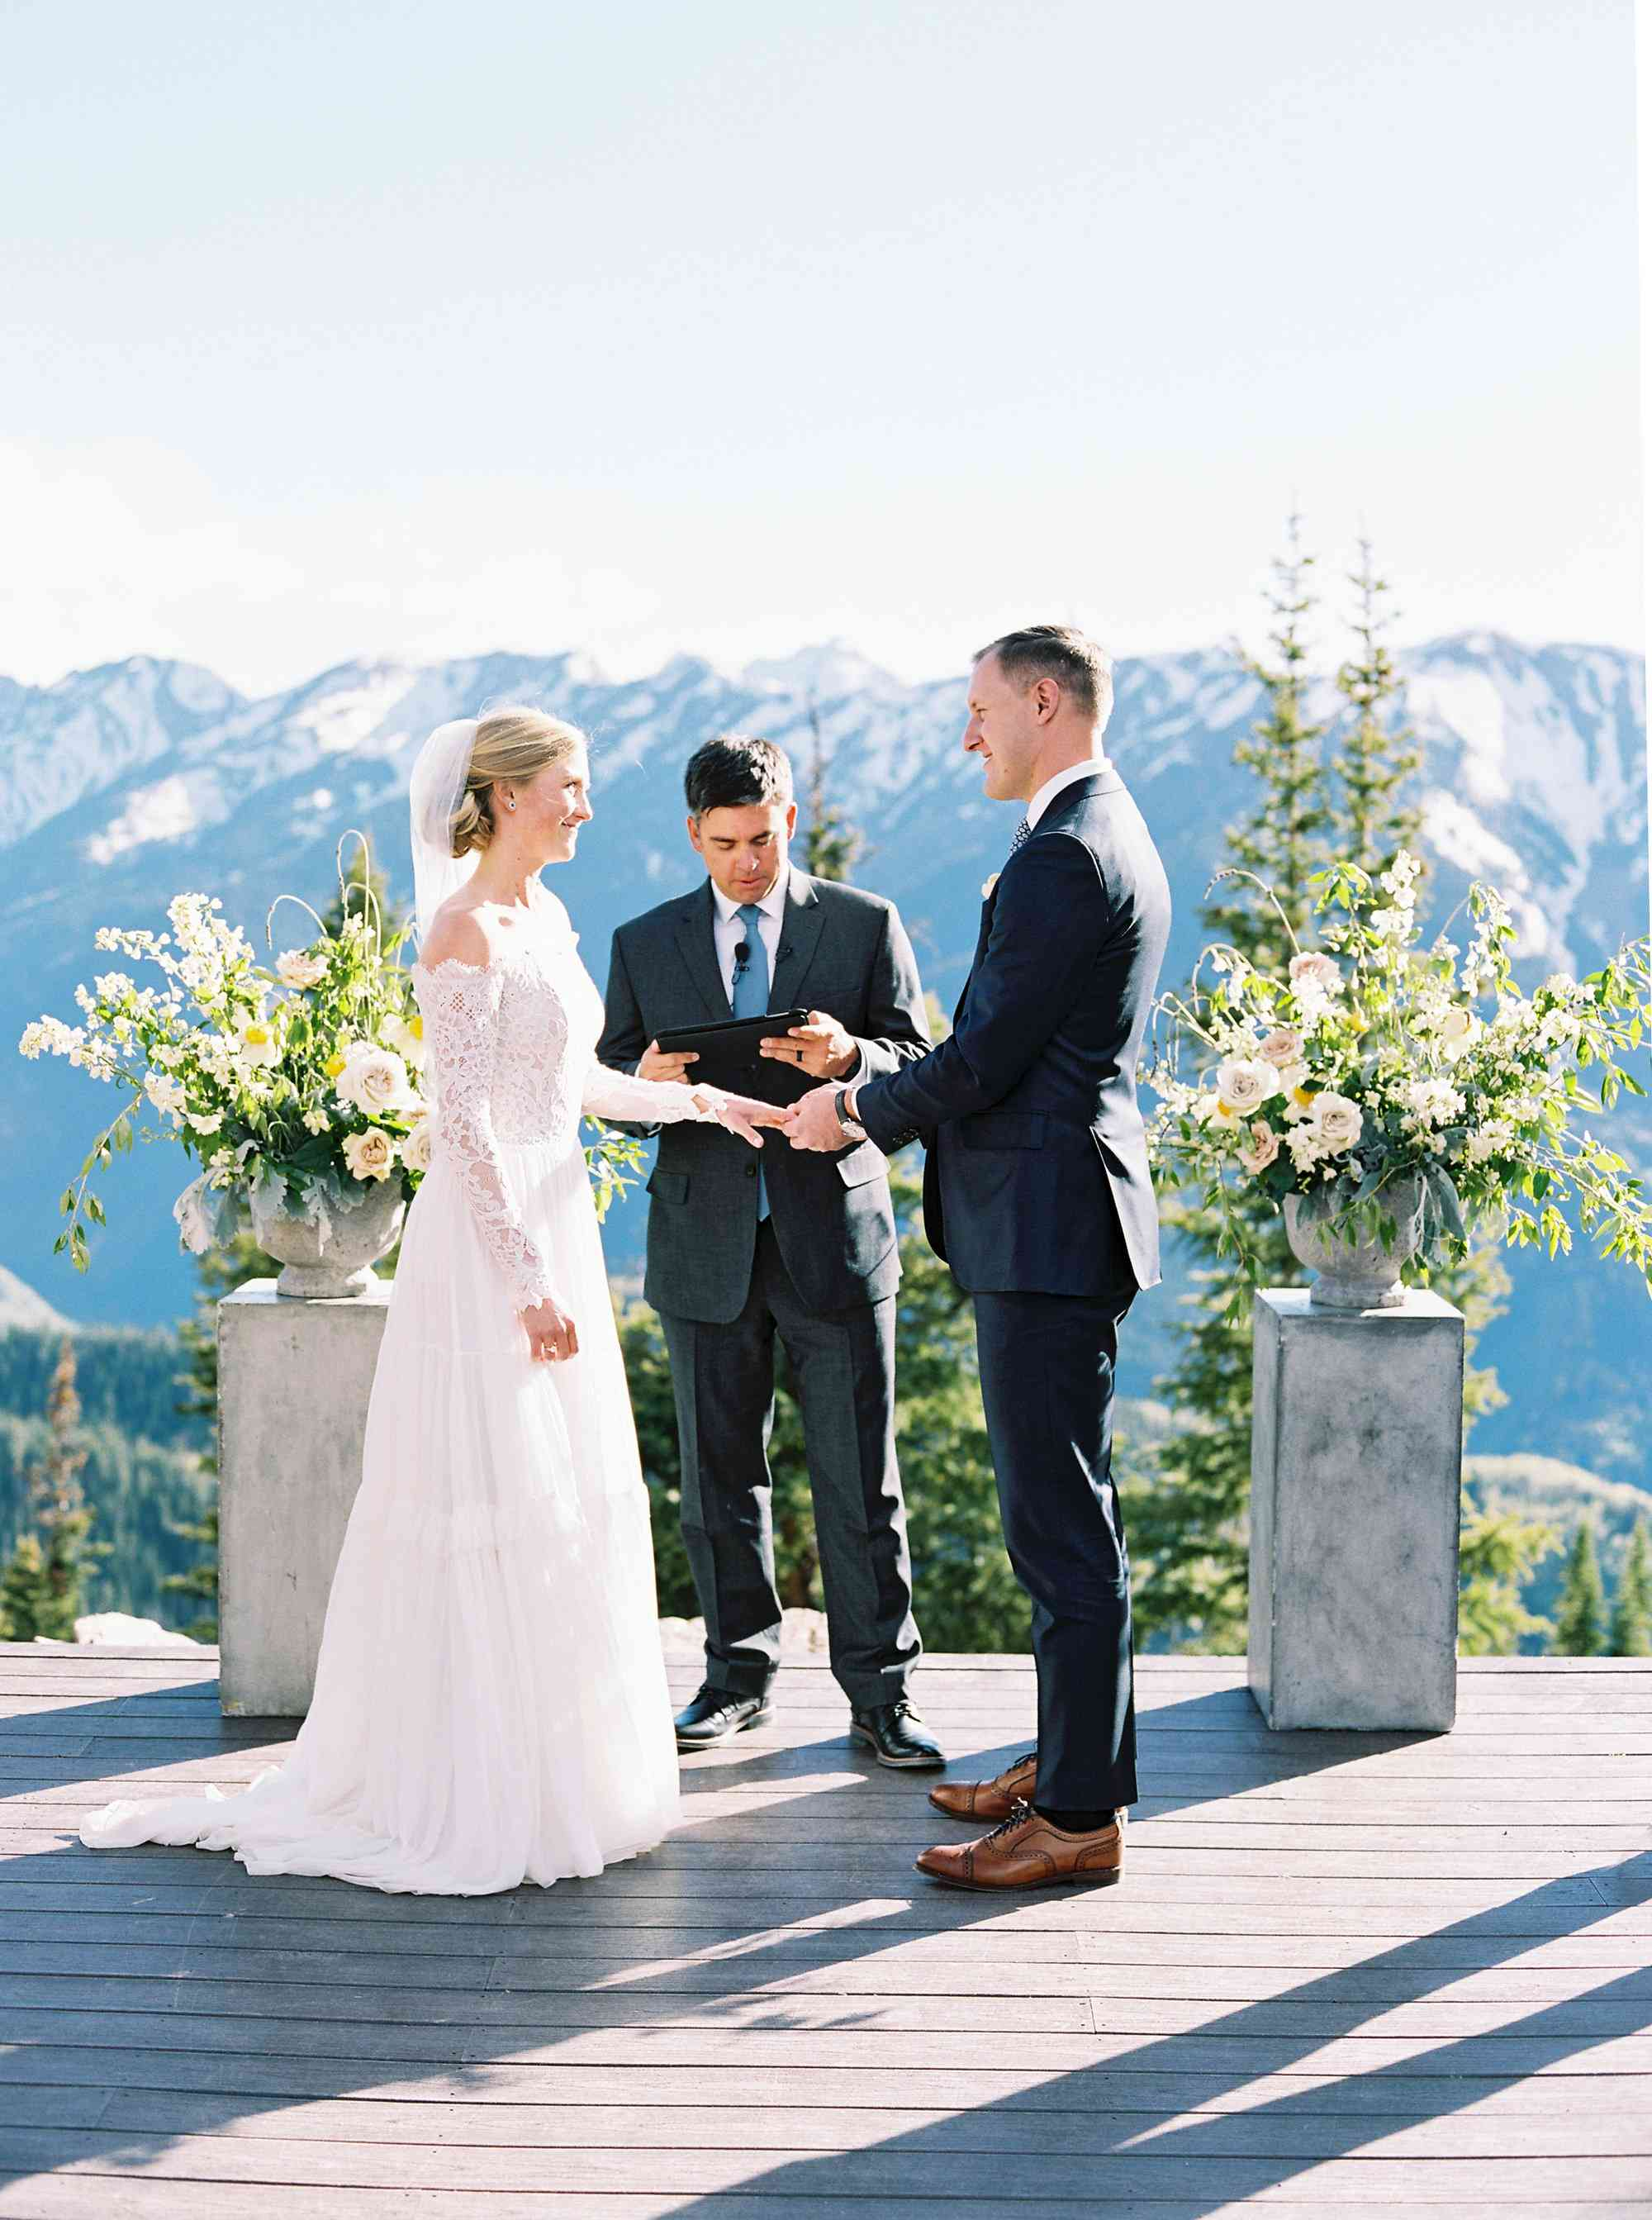 <p>ceremony exchanging vows</p><br><br>